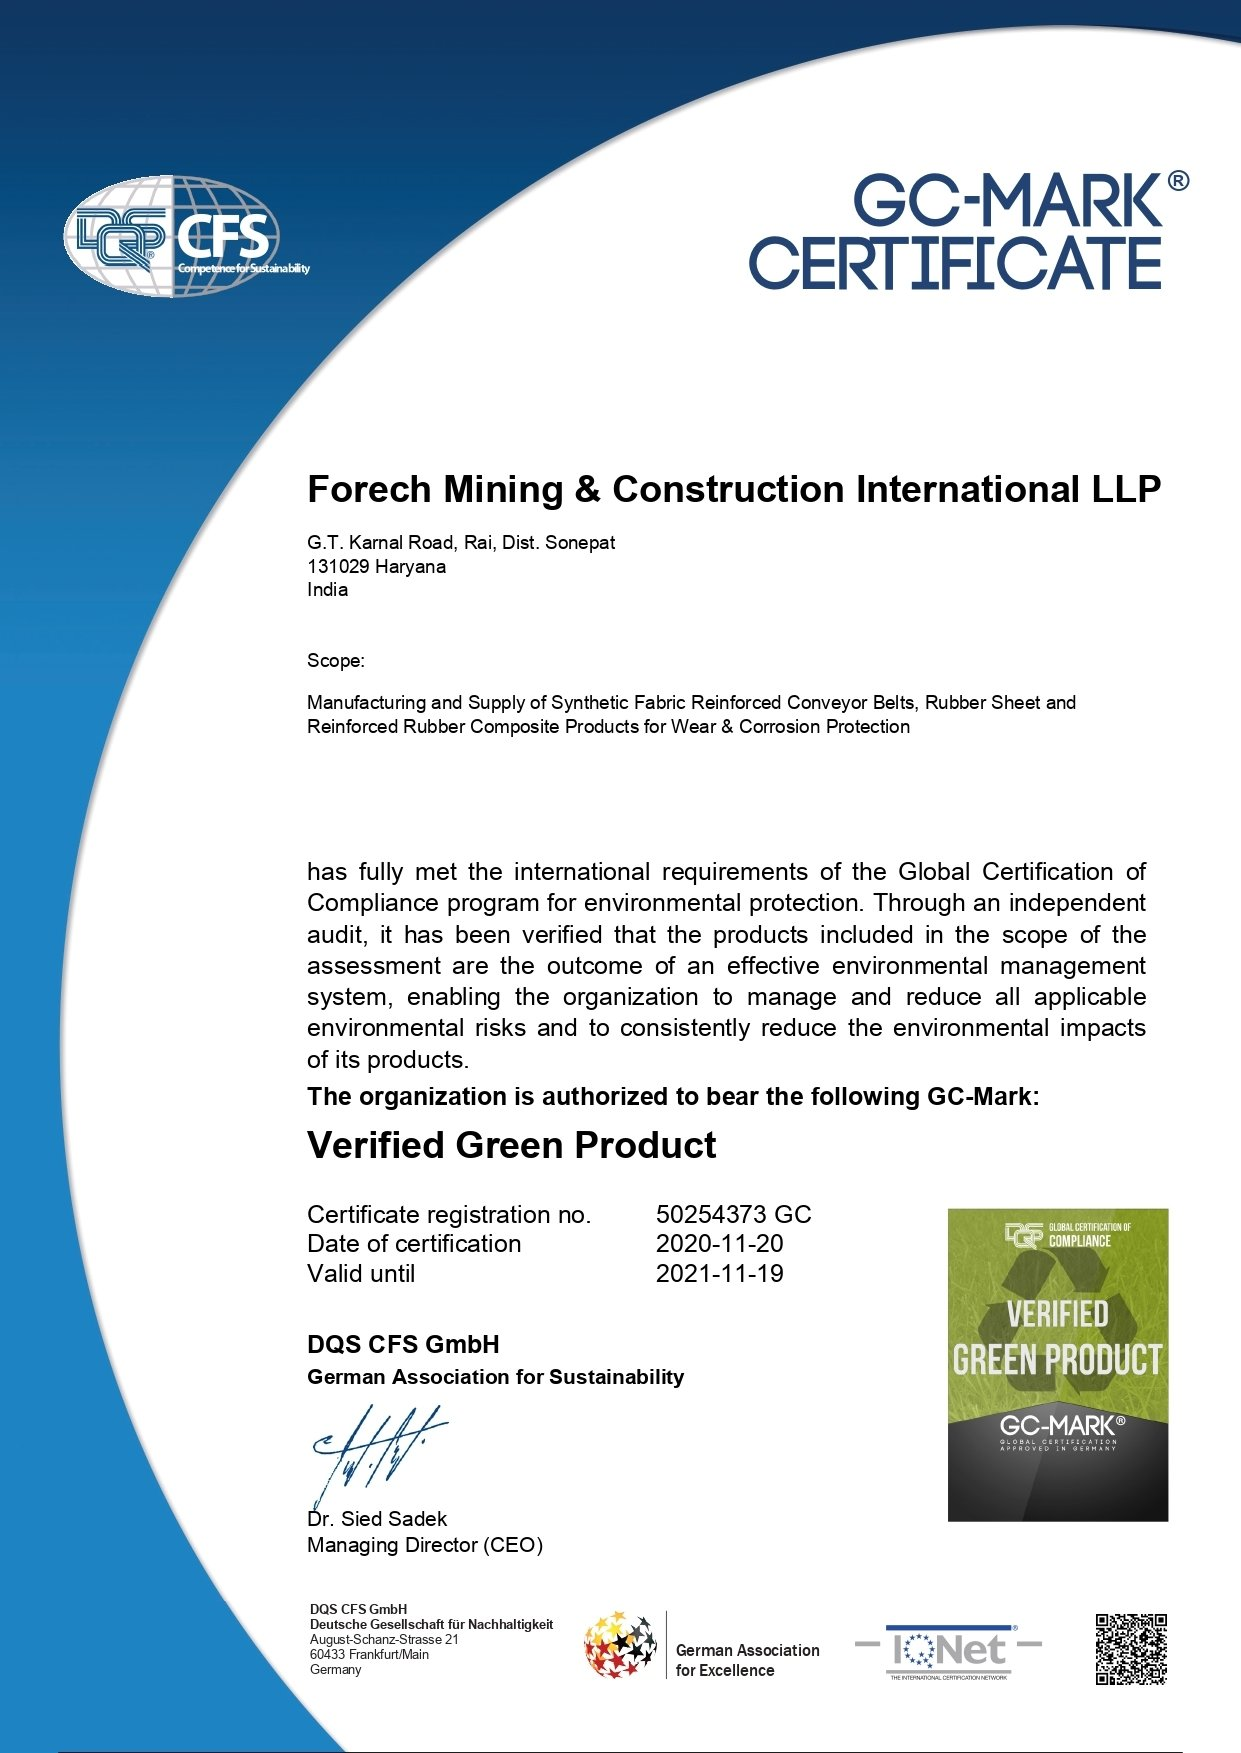 Scan of Green Product Certificate- FORECH MINING & CONSTRUCTION INTERNATIONAL LLP certificate